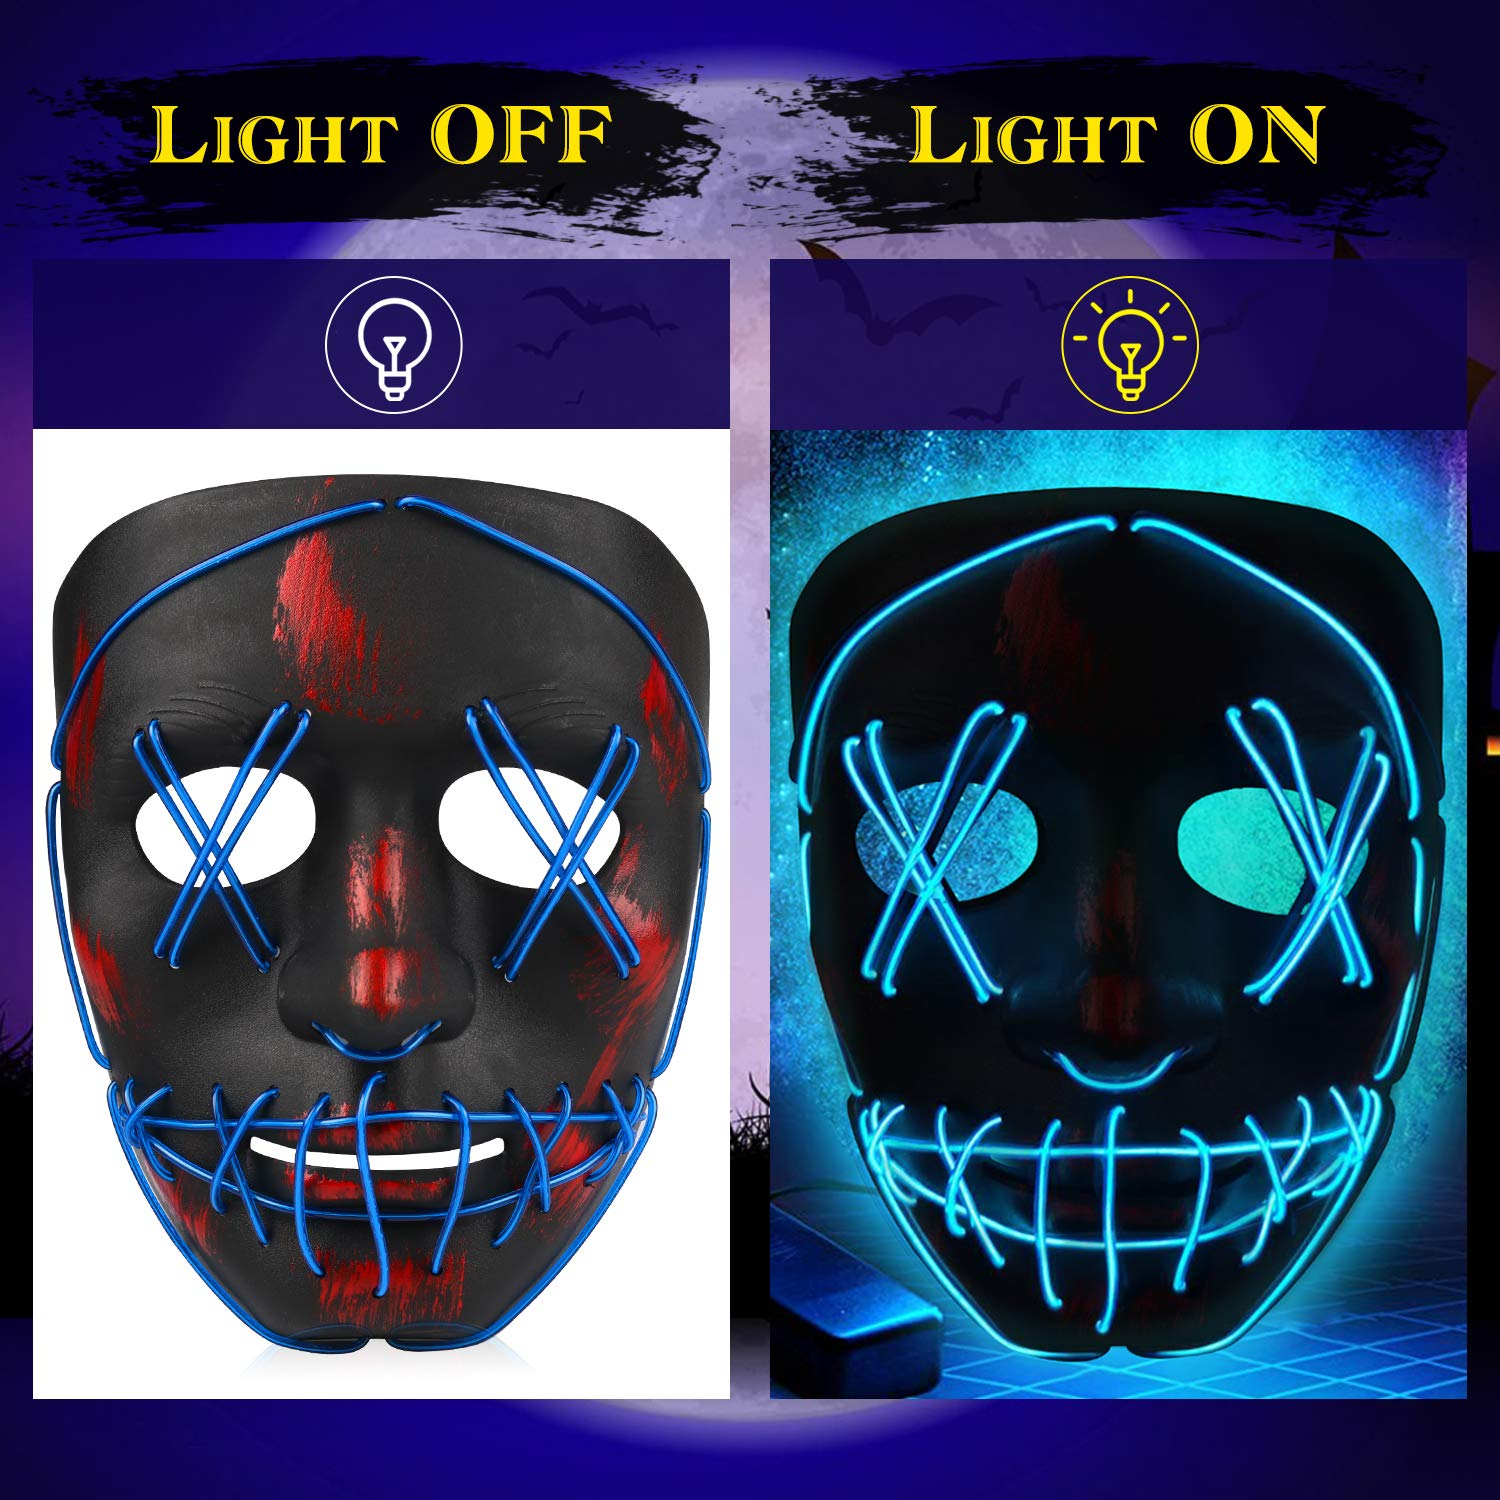 Henscoqi Halloween LED Mask, LED Purge Mask, Neon Mask EL Wire Cool Light Up Creepy Skeleton Mask for Kids Cosplay Costume Parties (LED Blue)